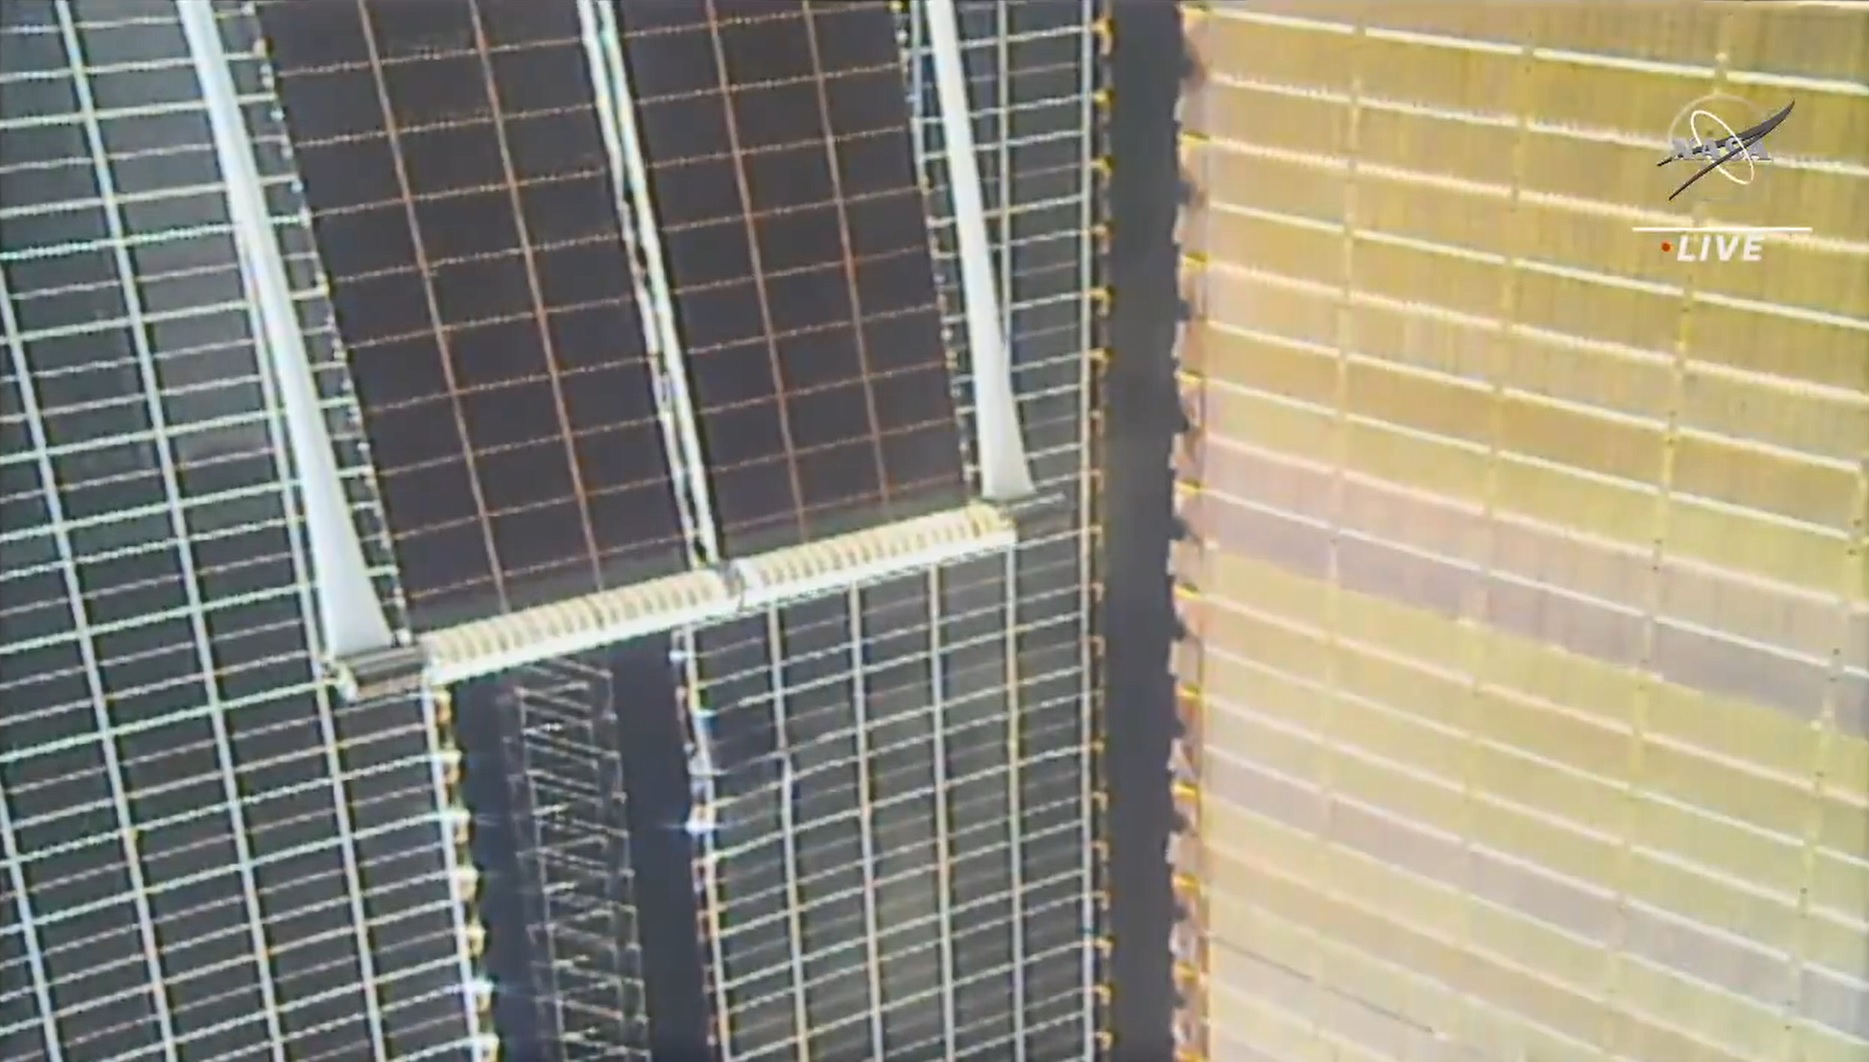 The new ISS Roll-Out Solar Array (iROSA) were successfully deployed in a process that took about 10 minutes.